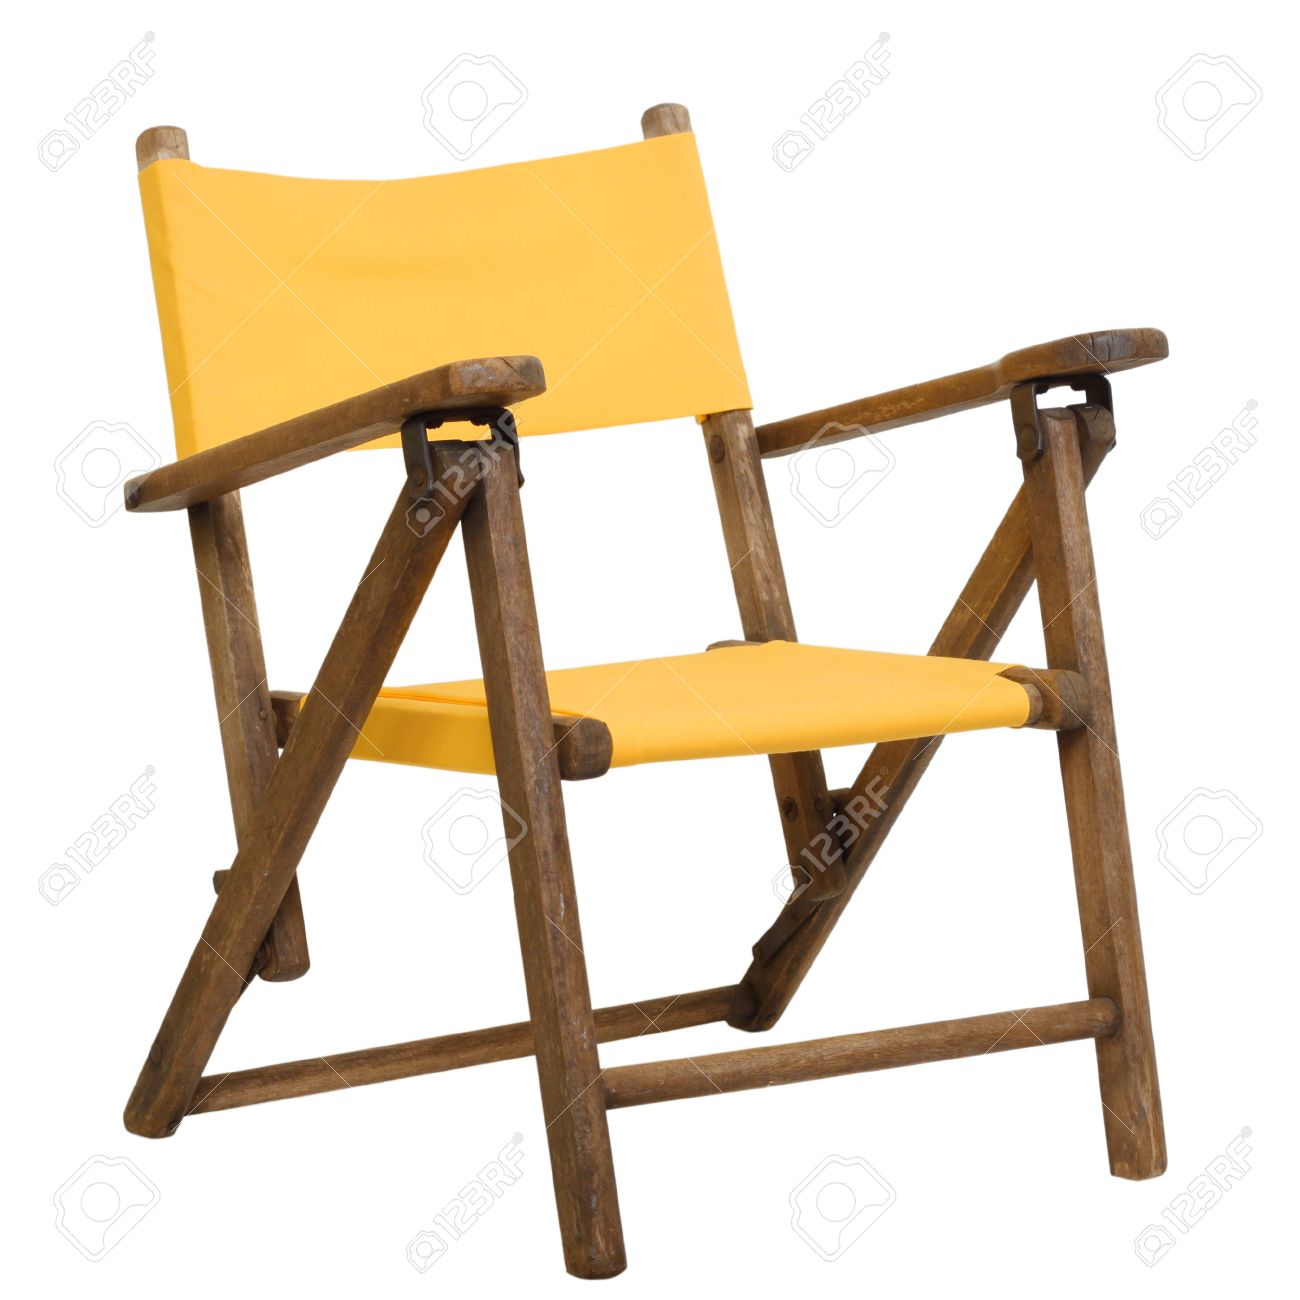 antique lawn chairs buy chair covers edmonton folding canvas childrens in bright yellow stock photo 11897875